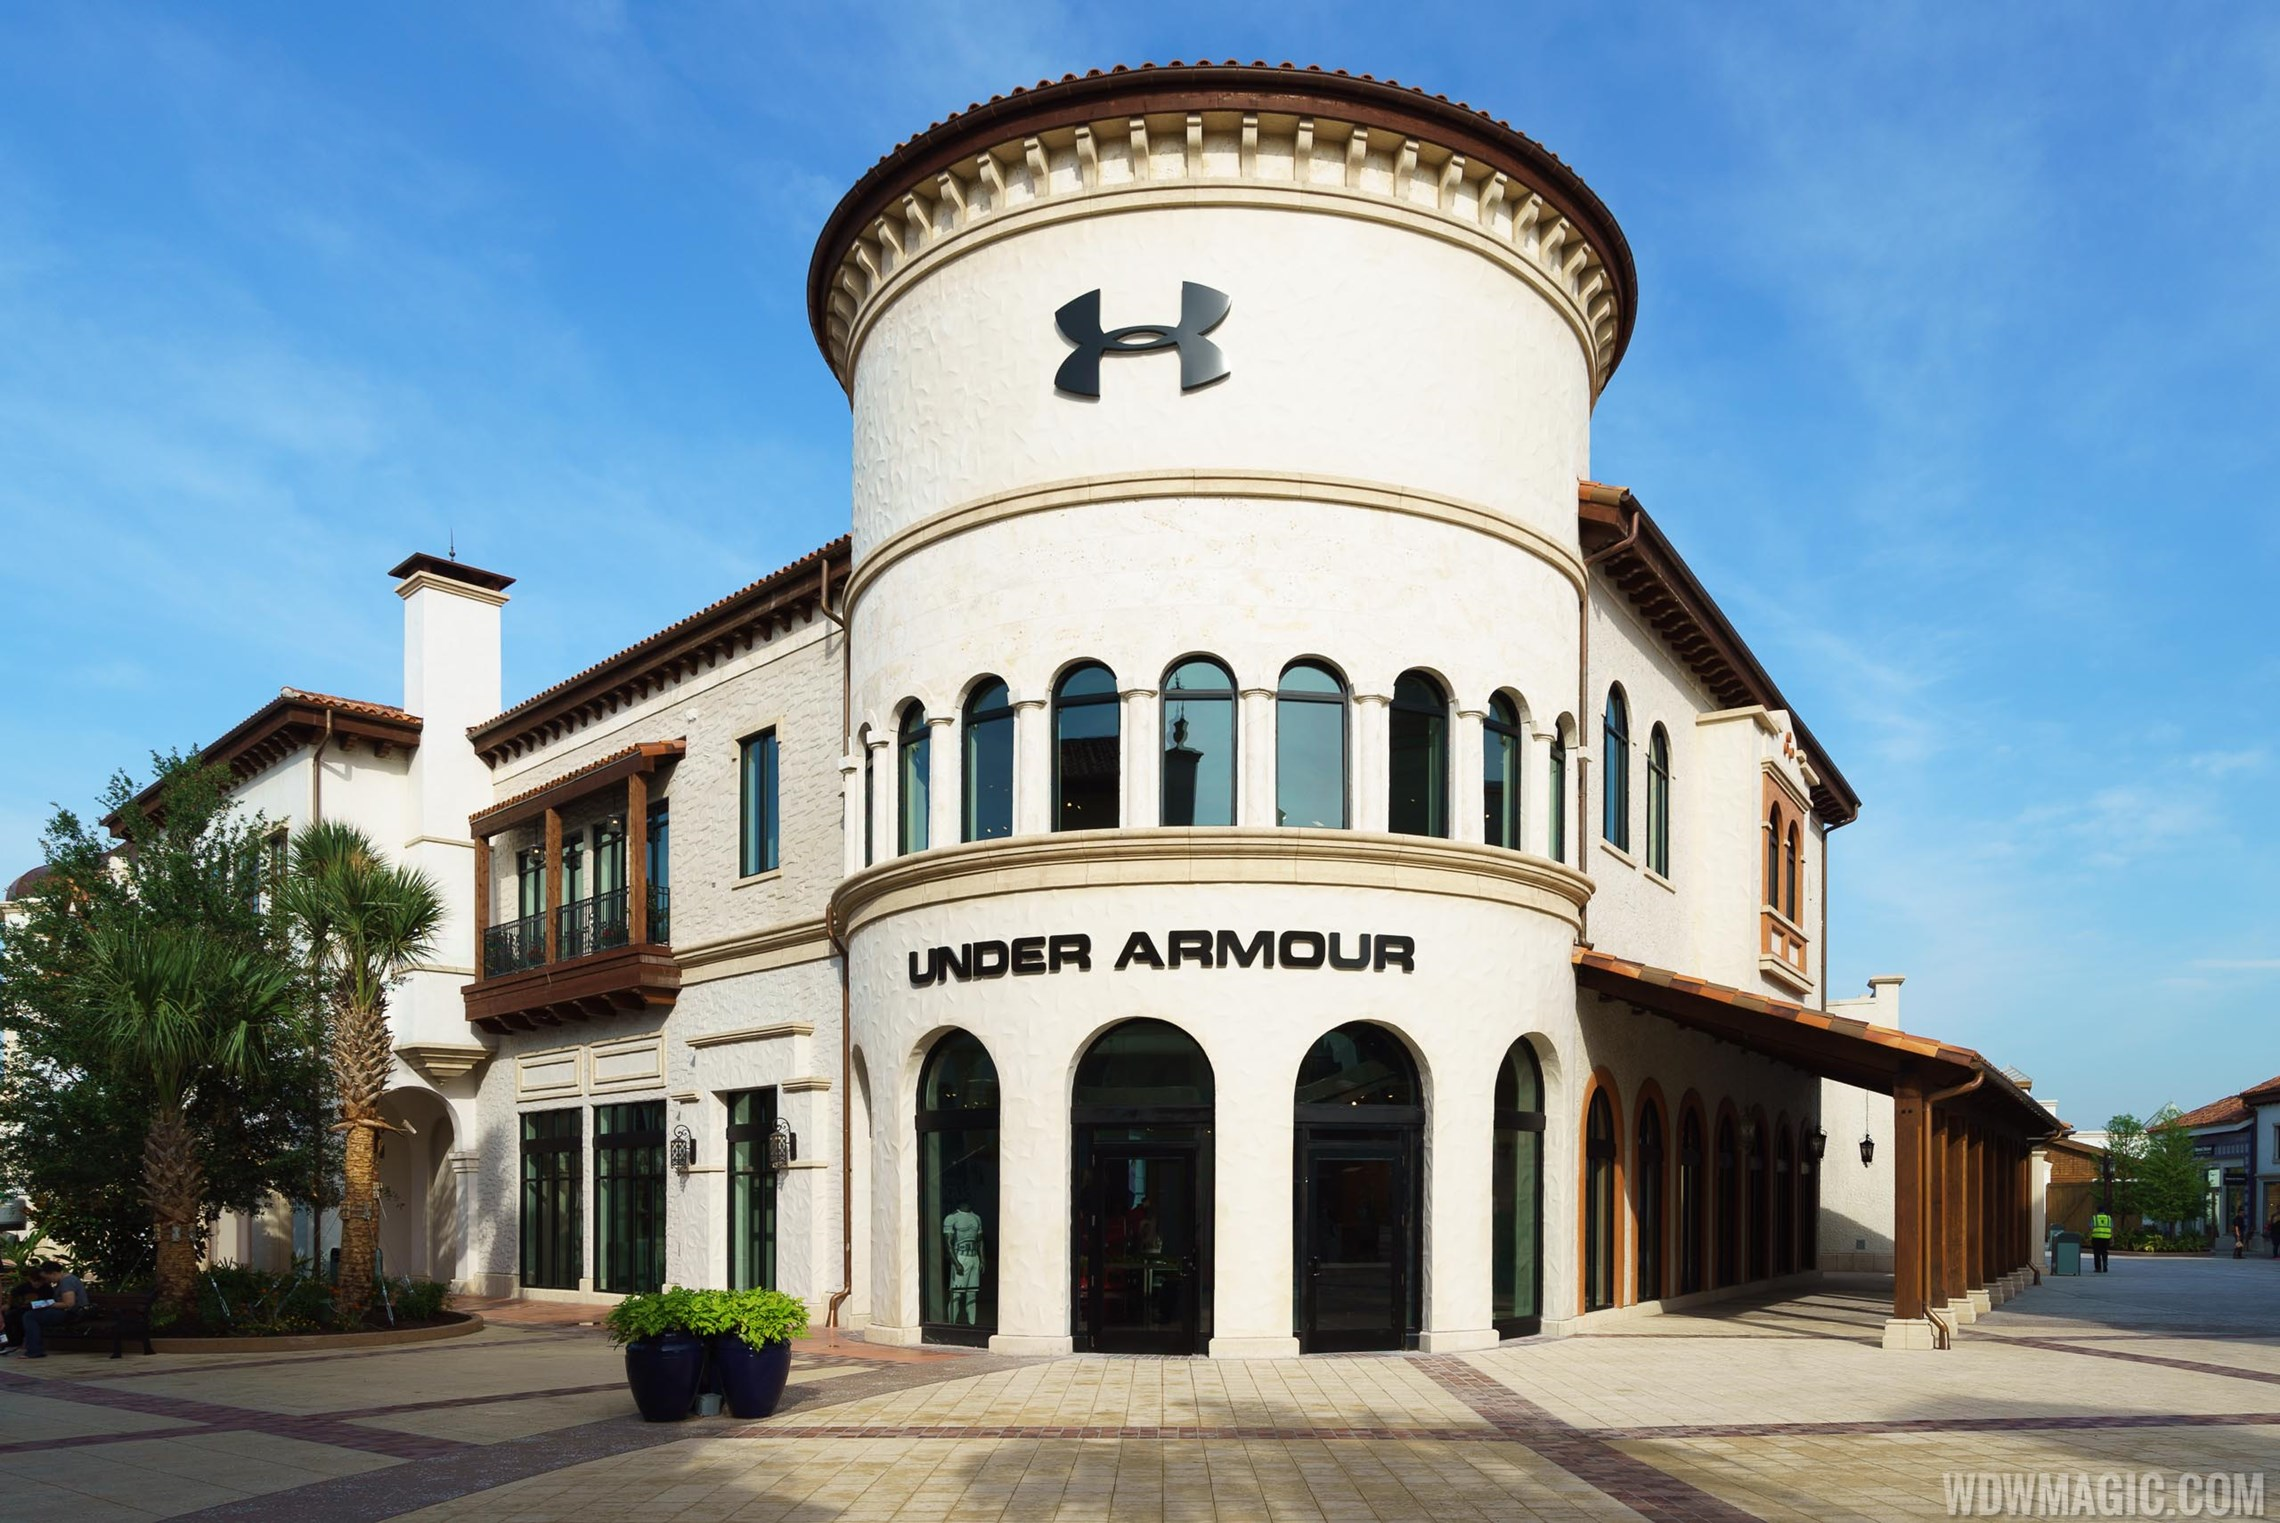 Under Armour overview